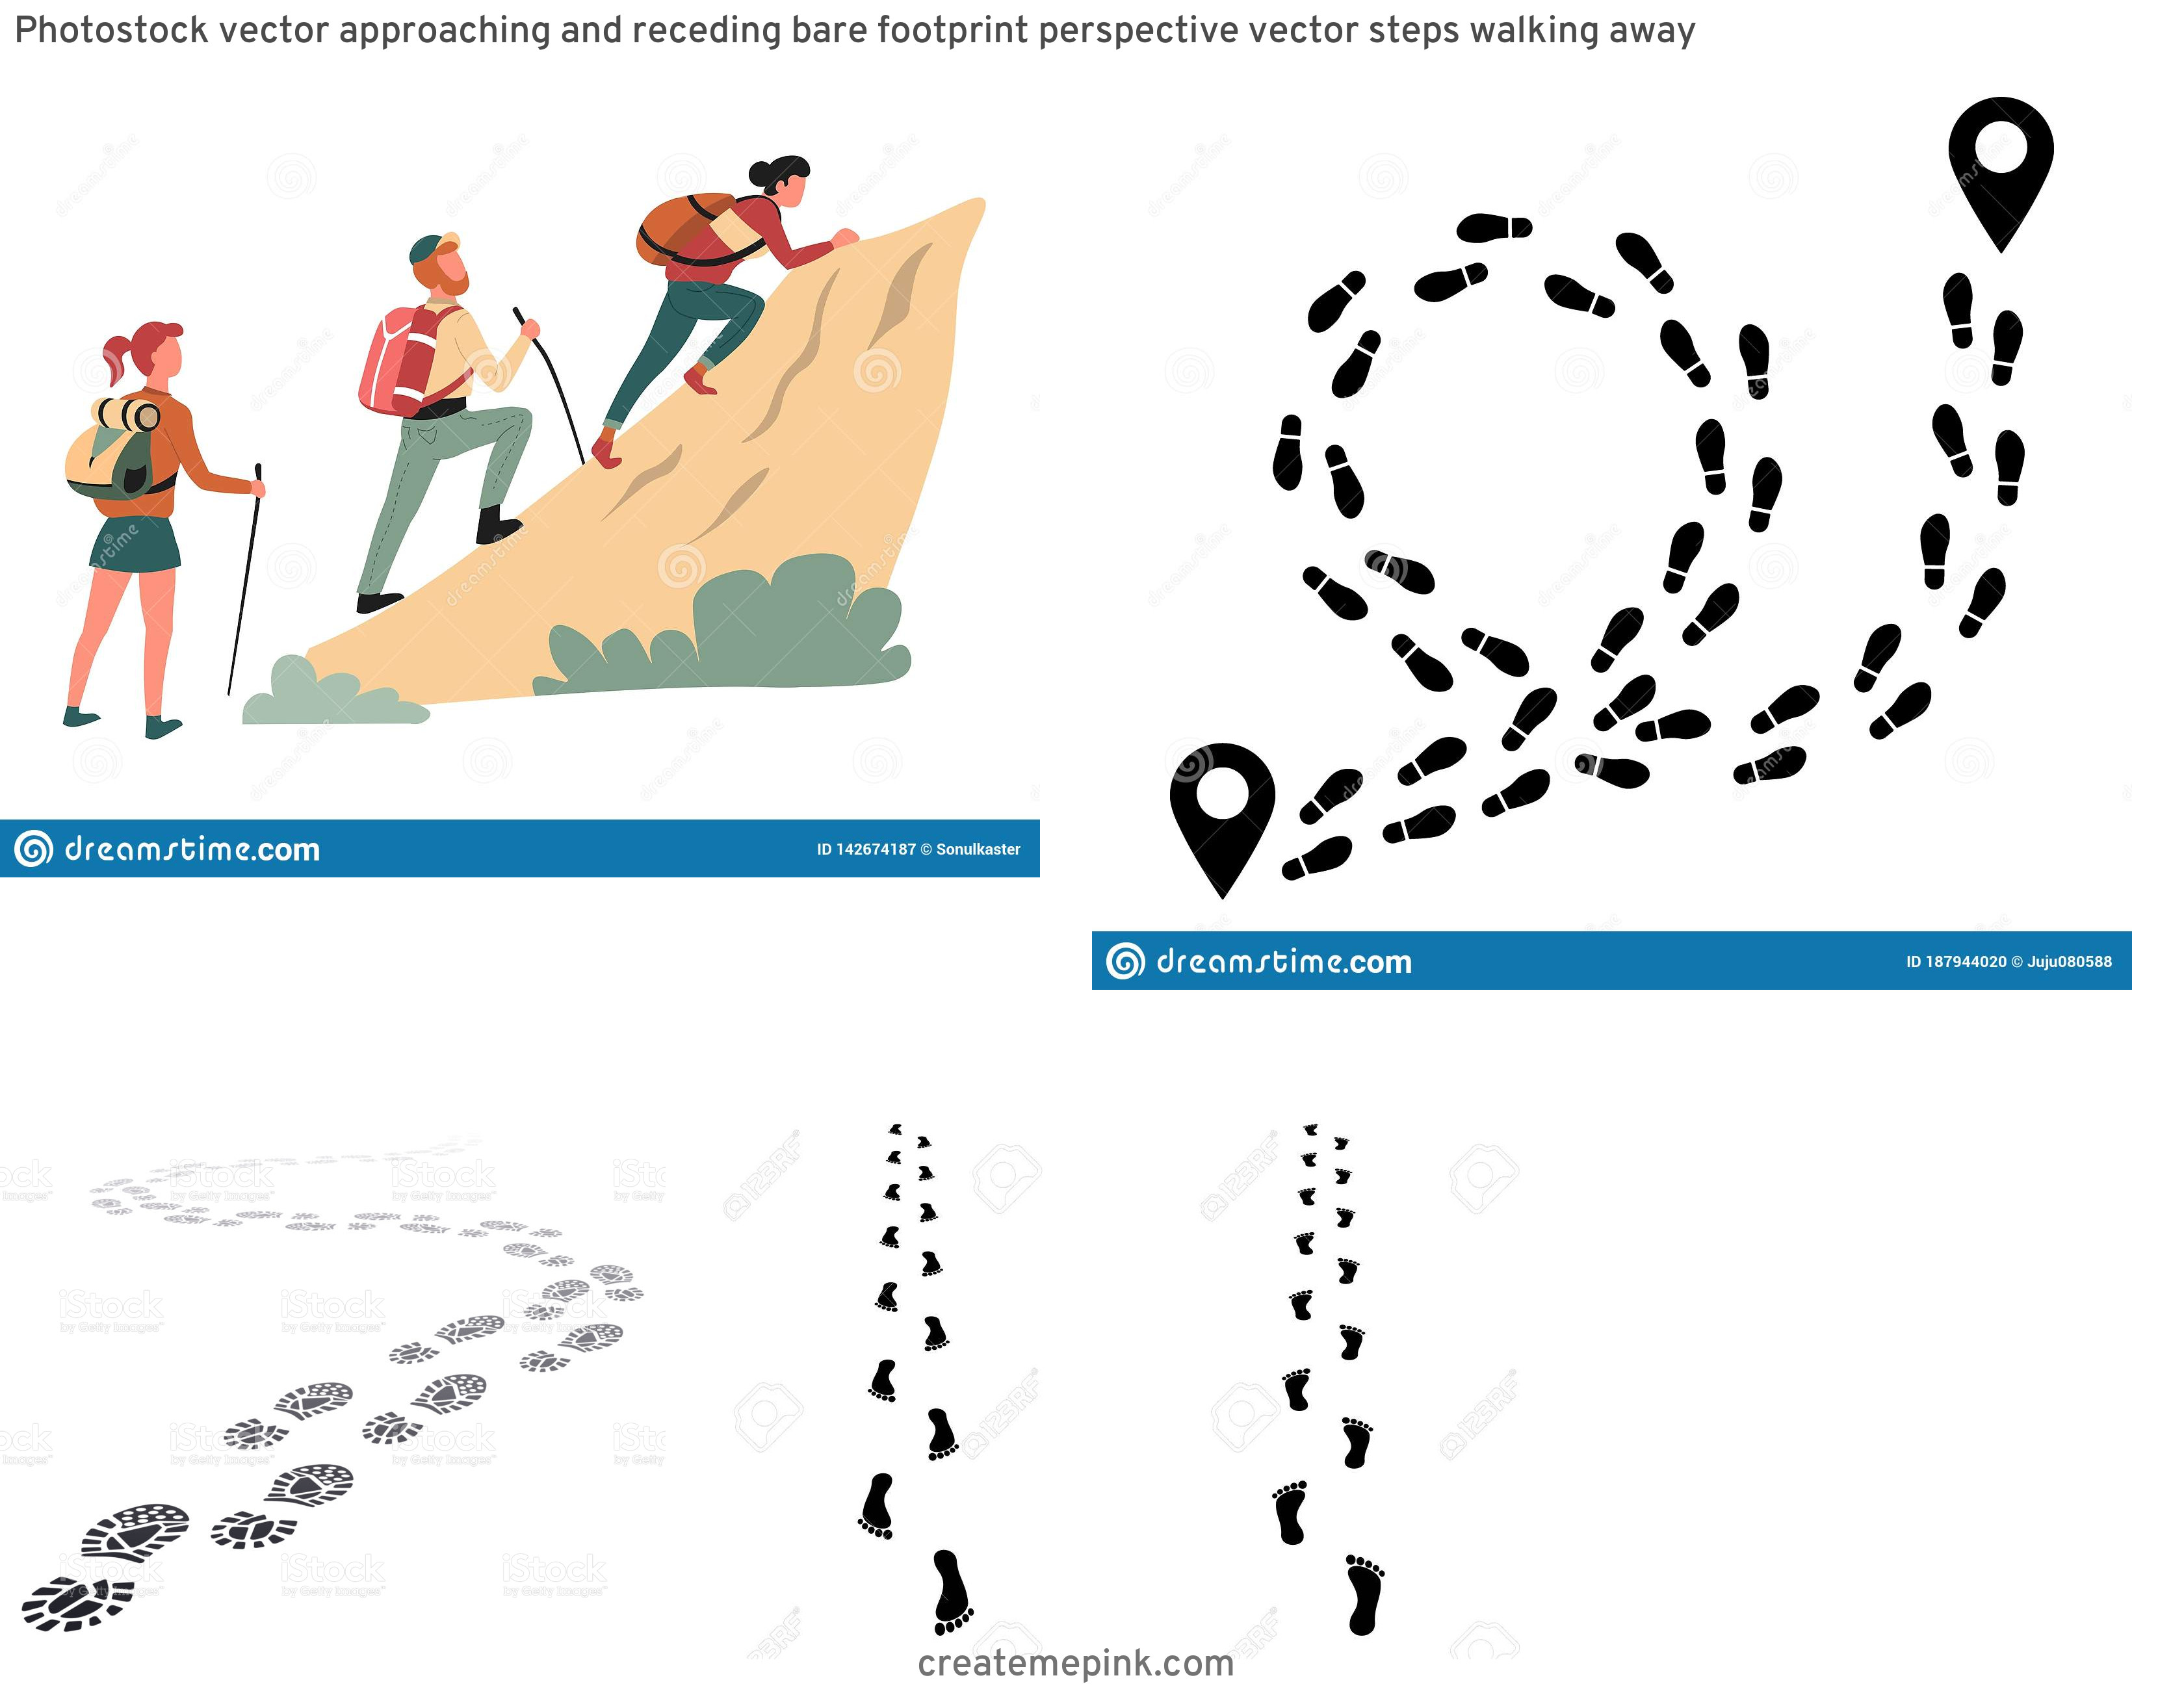 Vector Hiking Steps Walking: Photostock Vector Approaching And Receding Bare Footprint Perspective Vector Steps Walking Away